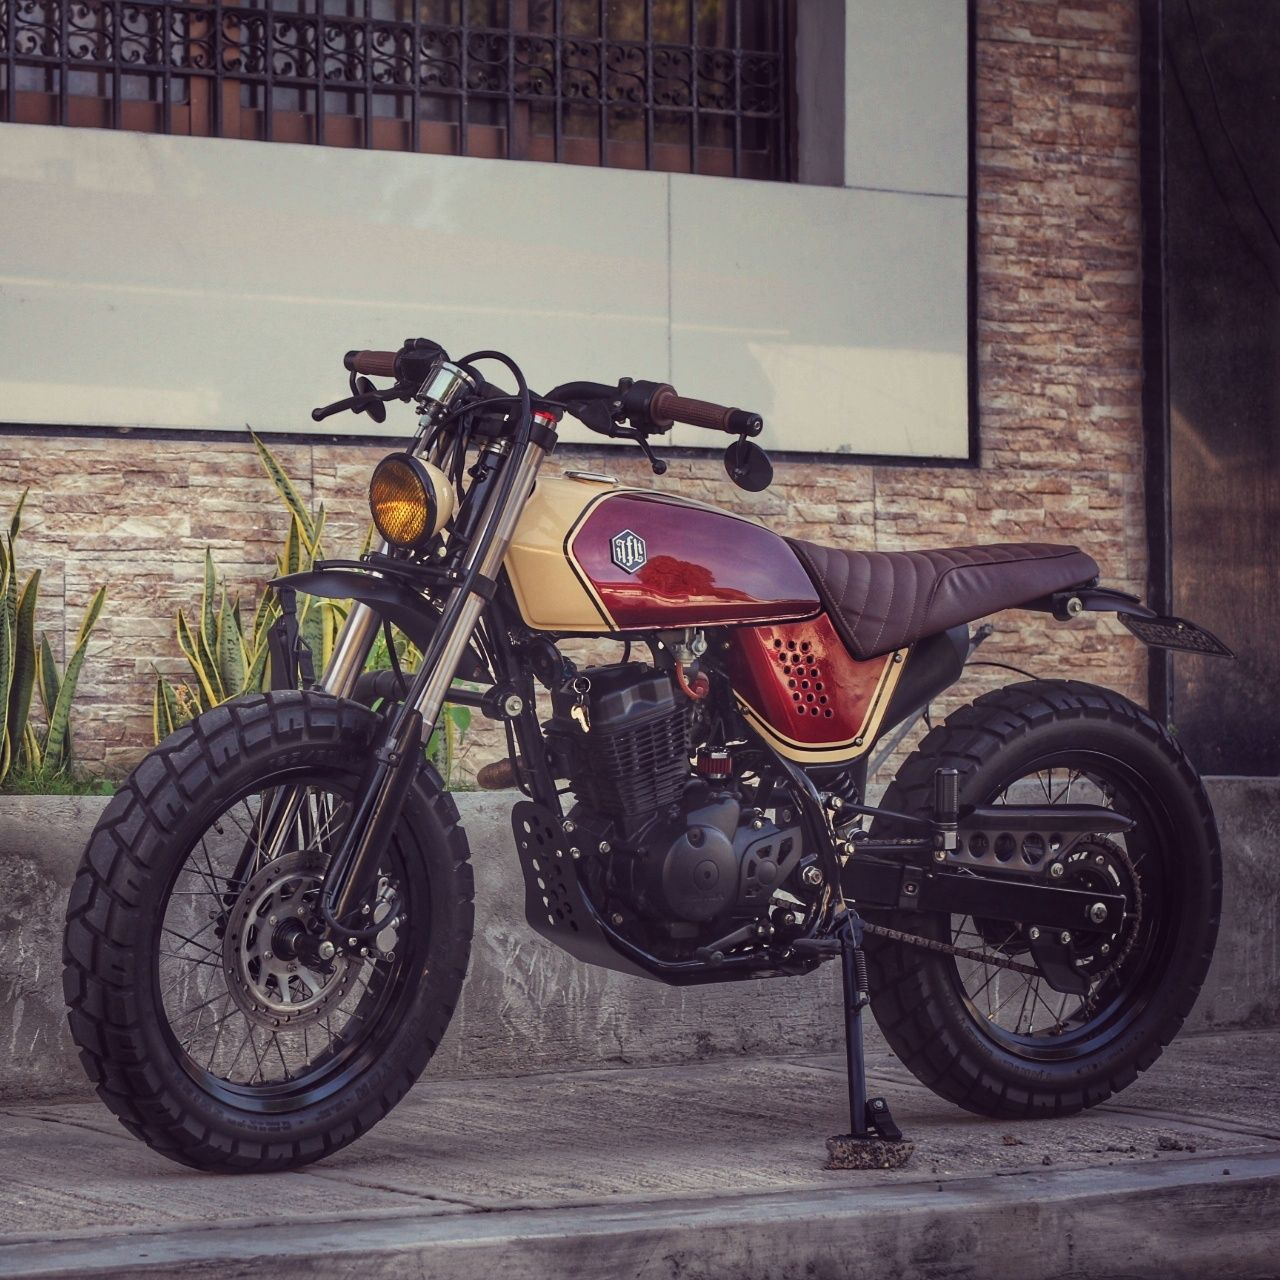 Pin by John Griffiths on Bikes and gear | Pinterest | Street tracker ...